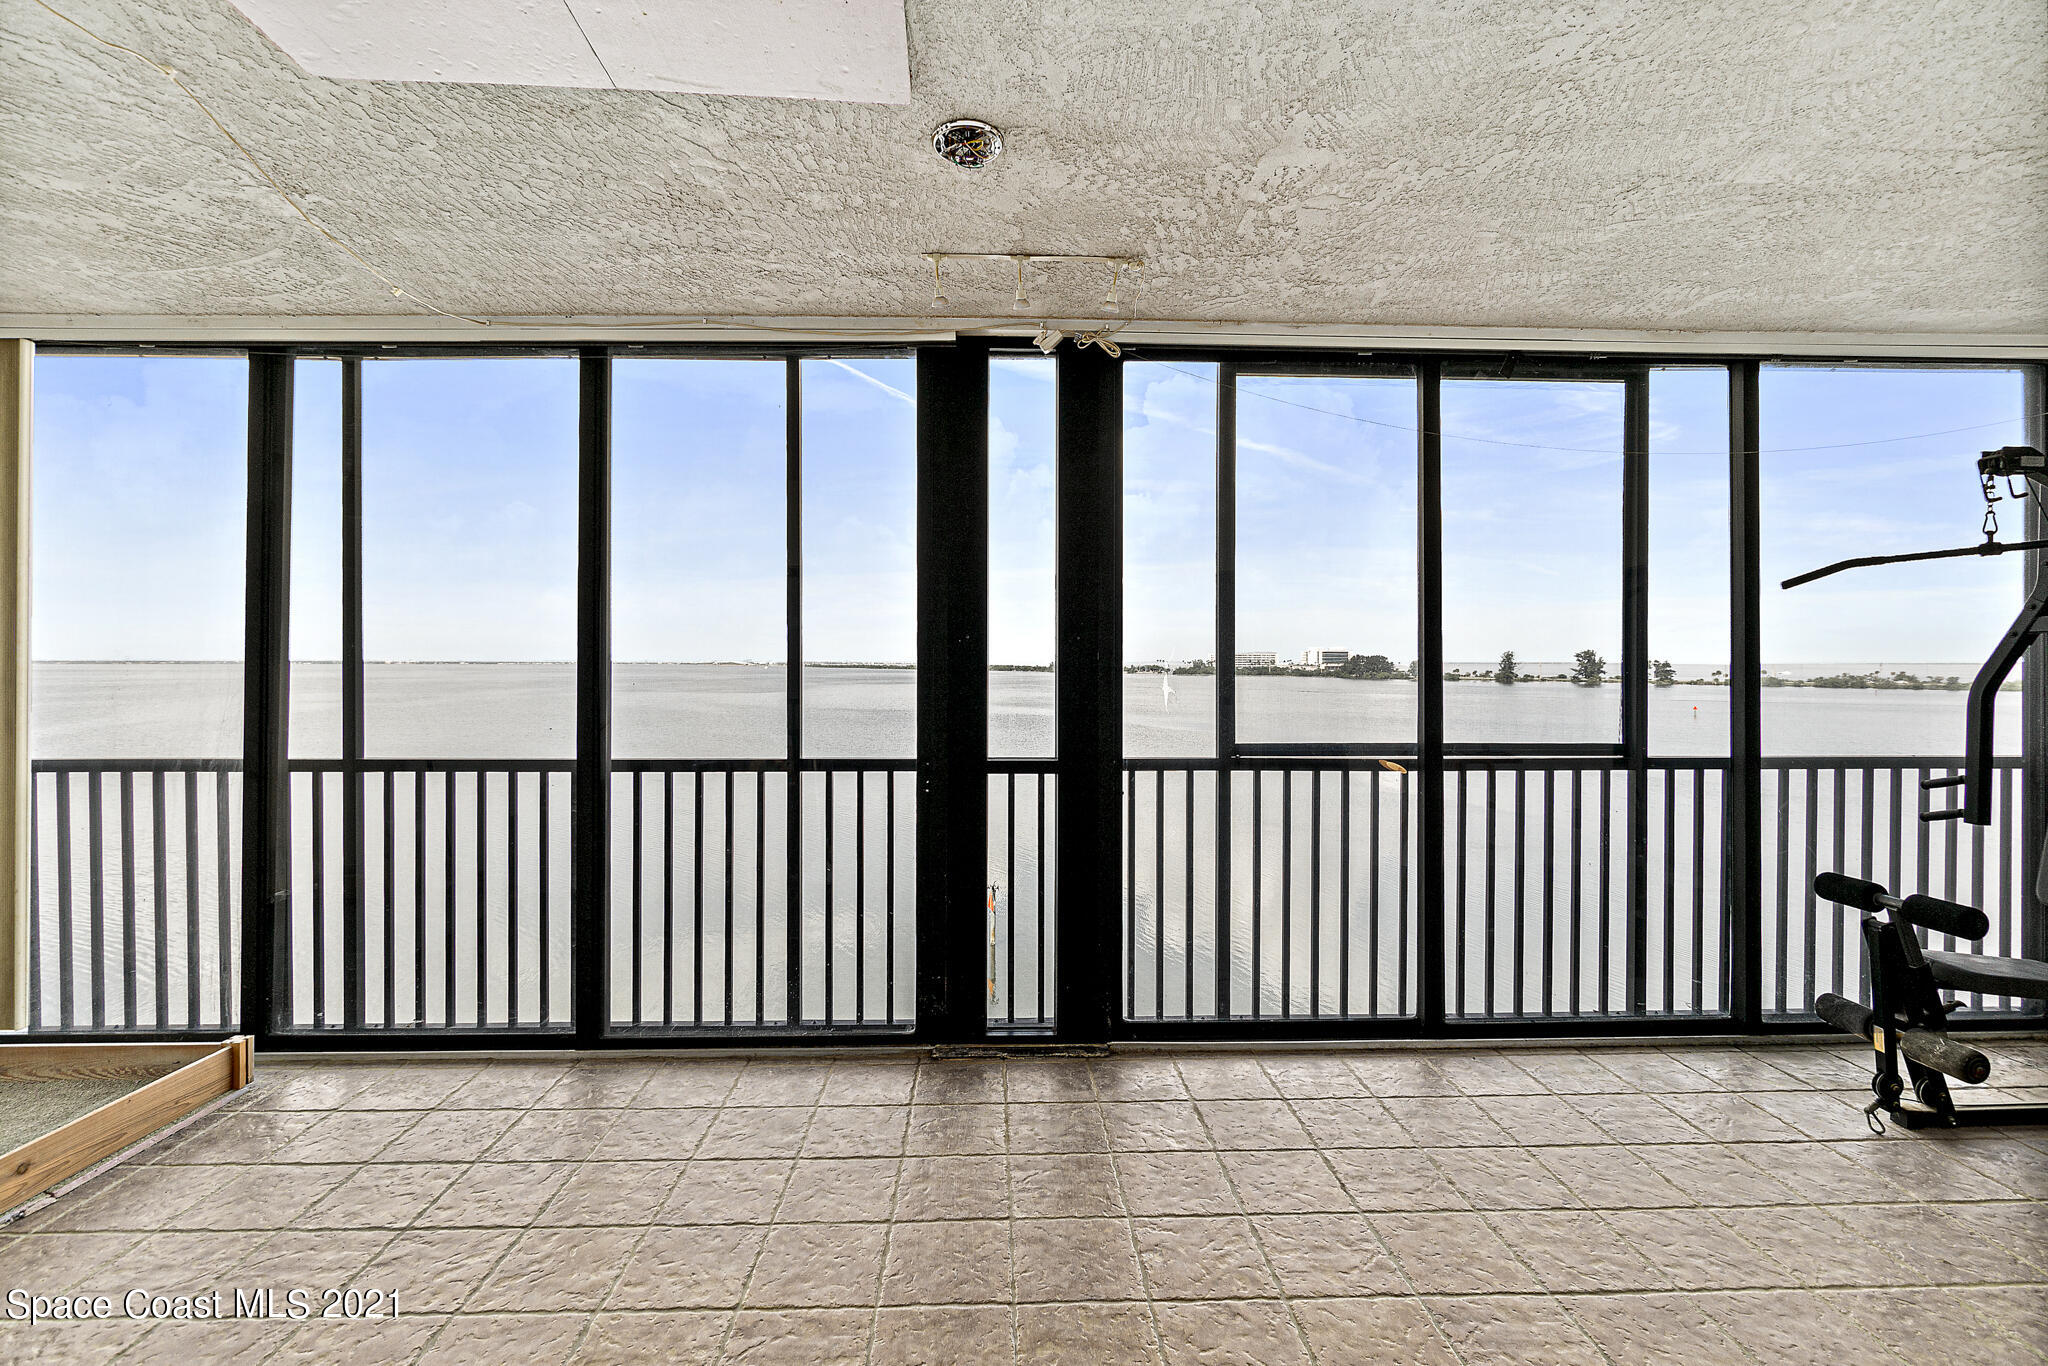 Phenomenal sunset views over the Banana River from this TOP FLOOR, CORNER UNIT that's located in the desirable Rock Pointe complex. This spacious unit boasts an enviable floor plan with 2 bedrooms & 2 separate balconies. A wide foyer welcomes you and leads to the living & dining area with sweeping views of the river. The potential is endless, this unit is ready for you to come make it home. Kitchen offers breakfast bar seating and solid surface countertops. The large primary suite features even more water views, a slider to the balcony and walk-in closet. This complex has it all, secure lobbies, heated pool & spa, clubhouse with exercise room, tennis court, fishing dock & kayak entry off boardwalk and vehicle wash area, plus unit comes with a private, under building 1 car garage.